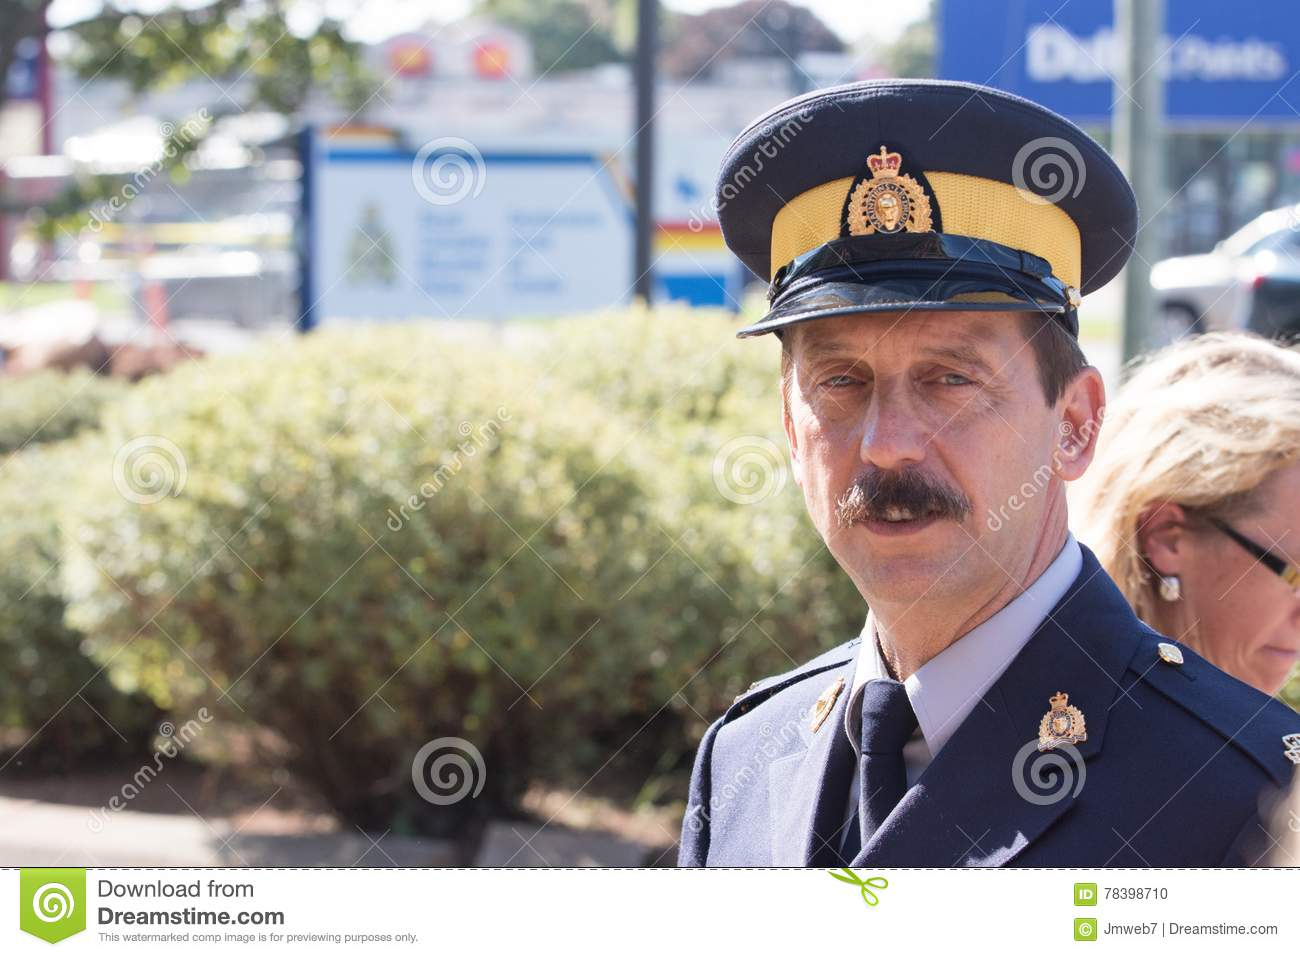 bf1bb238f7bd6 Rcmp Officer Stock Images - Download 73 Royalty Free Photos